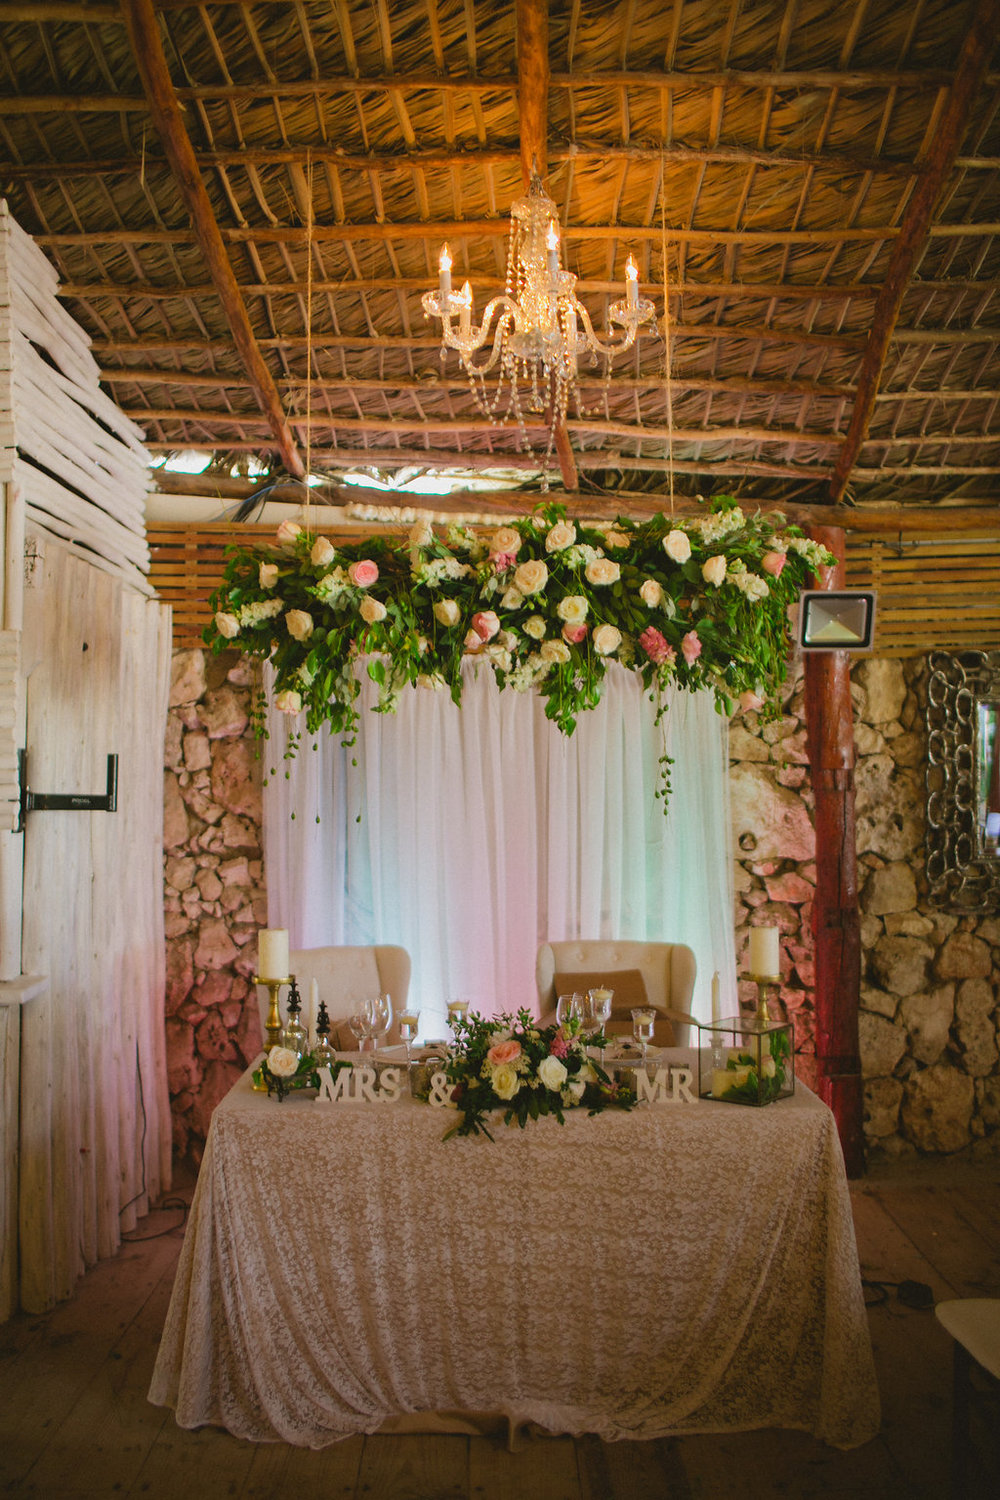 Lori & Ross, April 8, 2016 Decor by Natalia Roldan Venue: Huracan Cafe Photo by  Katya Nova